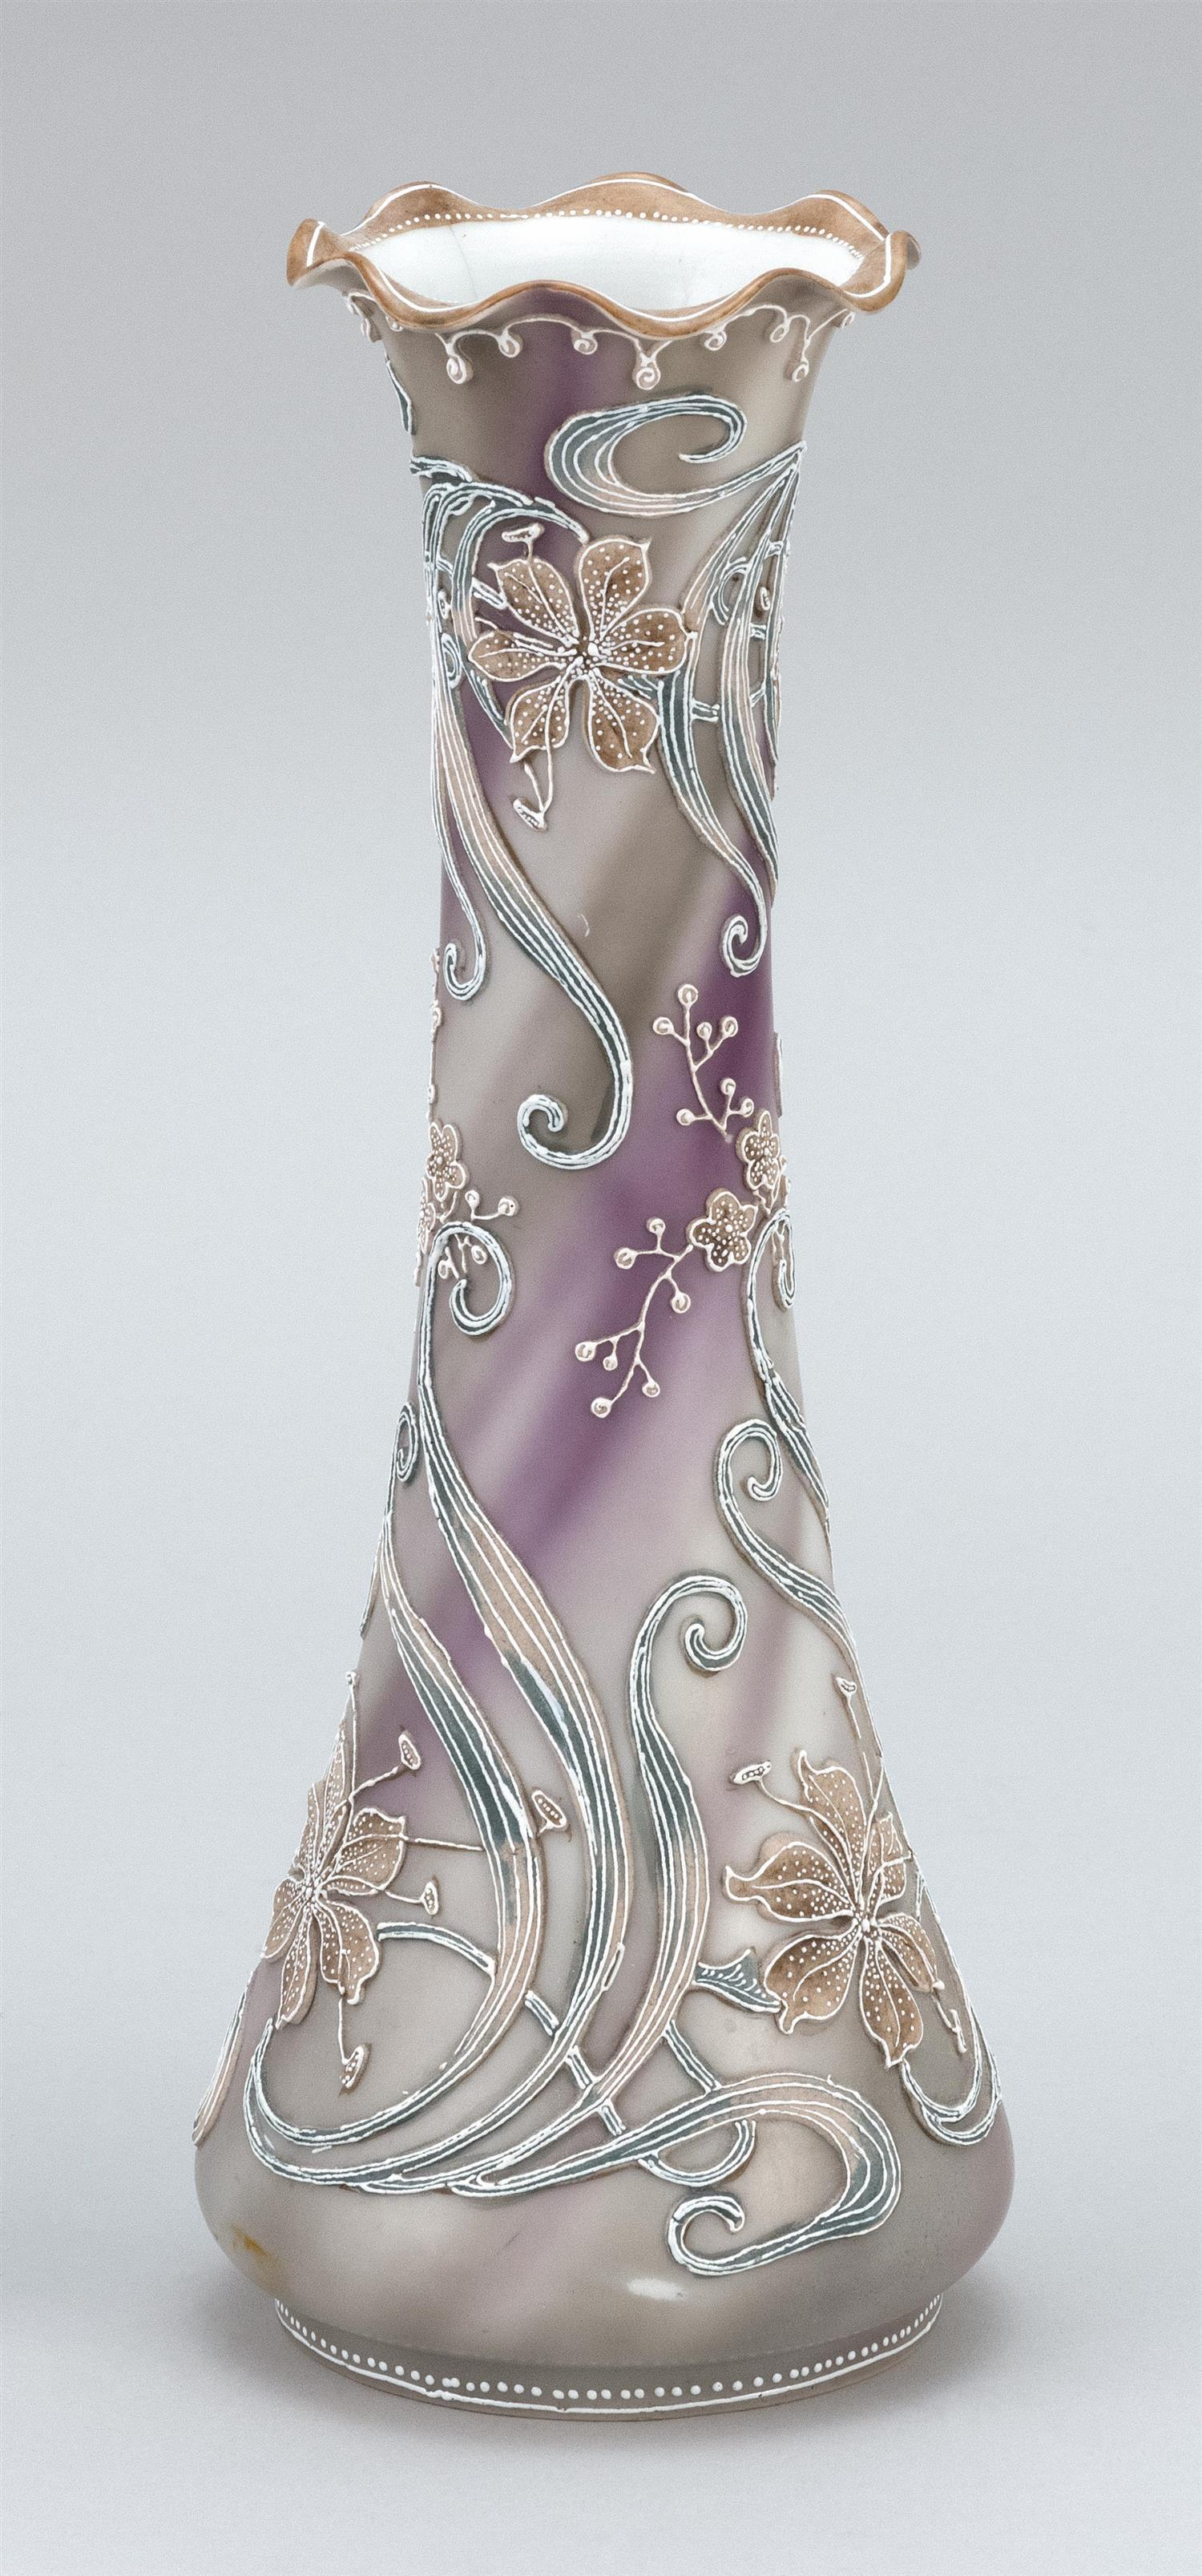 "MORIAGE NIPPON PORCELAIN VASE Conical, with a floral design on a smoke gray ground. Height 11""."